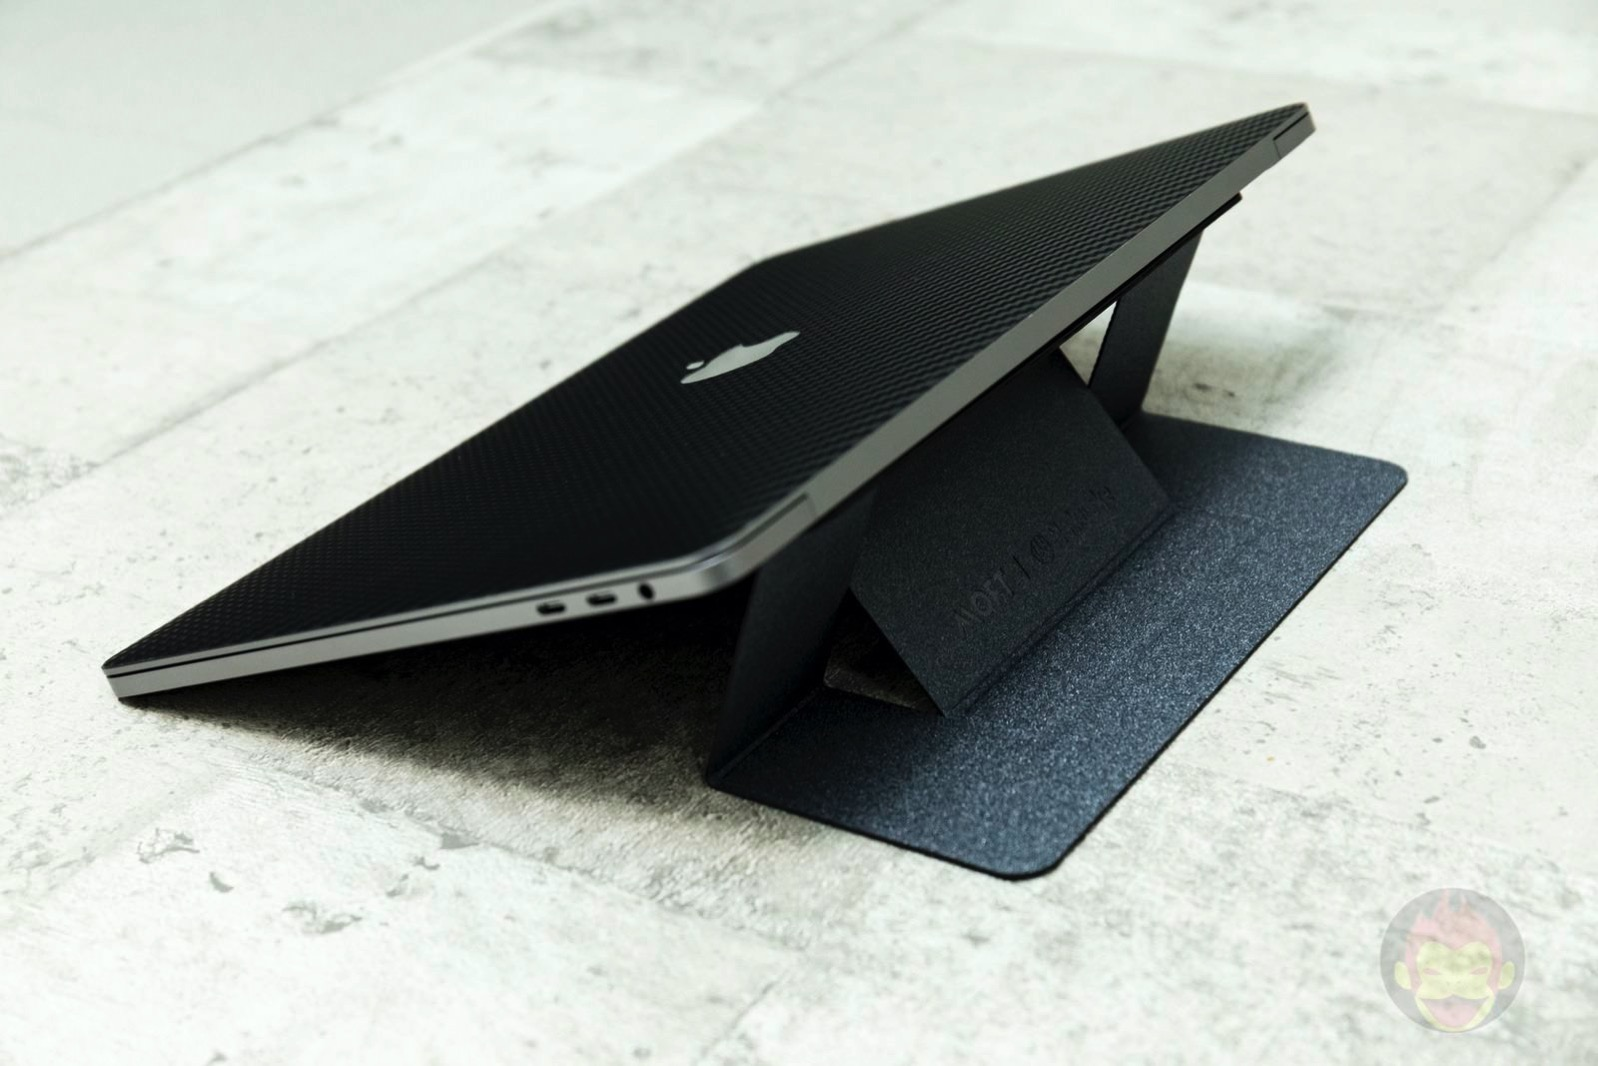 MOFT Laptop Stand review 07